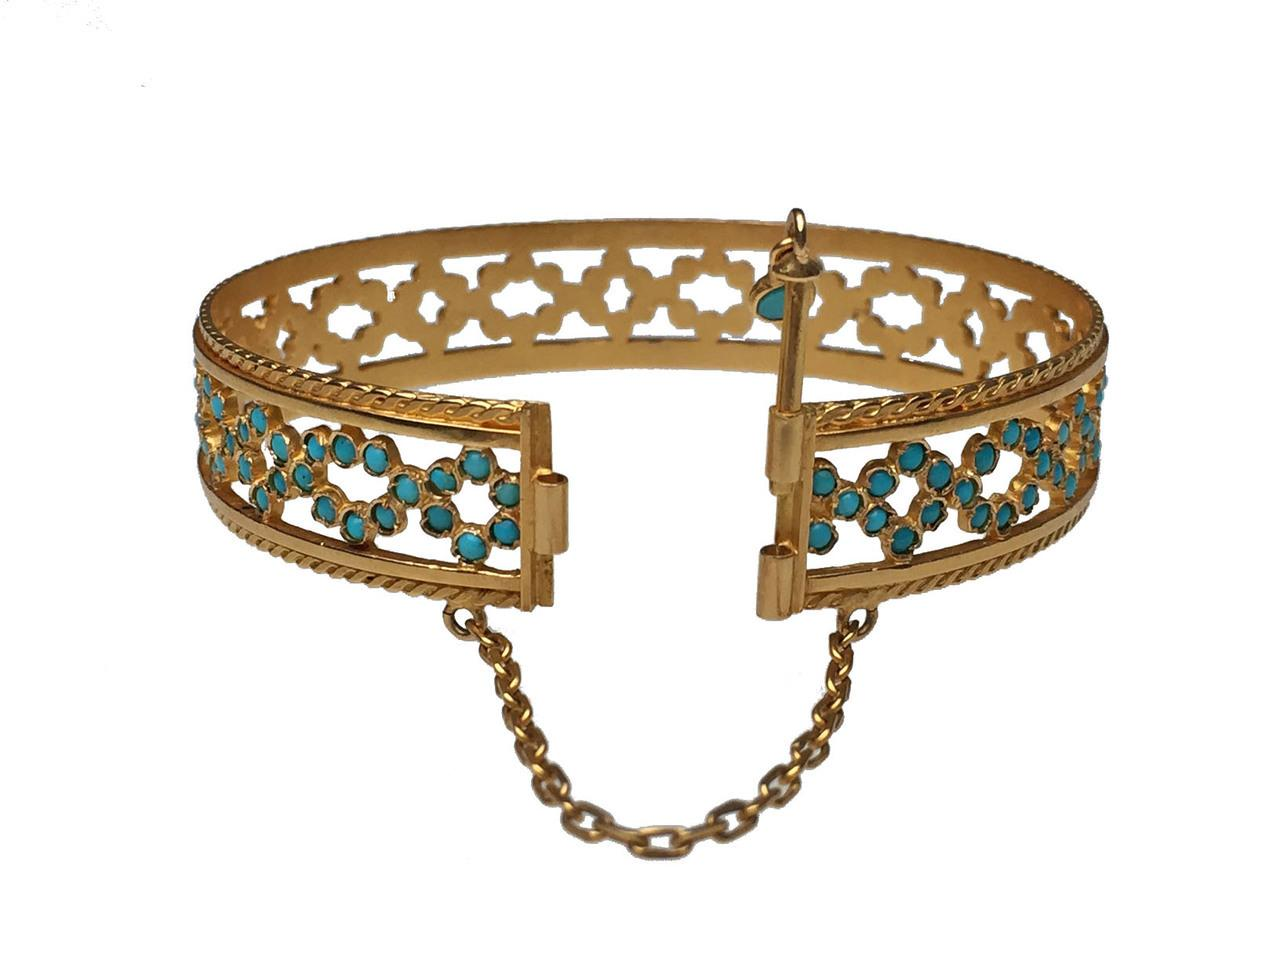 18 karat yellow gold and turquoise cuff bracelet from for Estate jewelry burlington vt